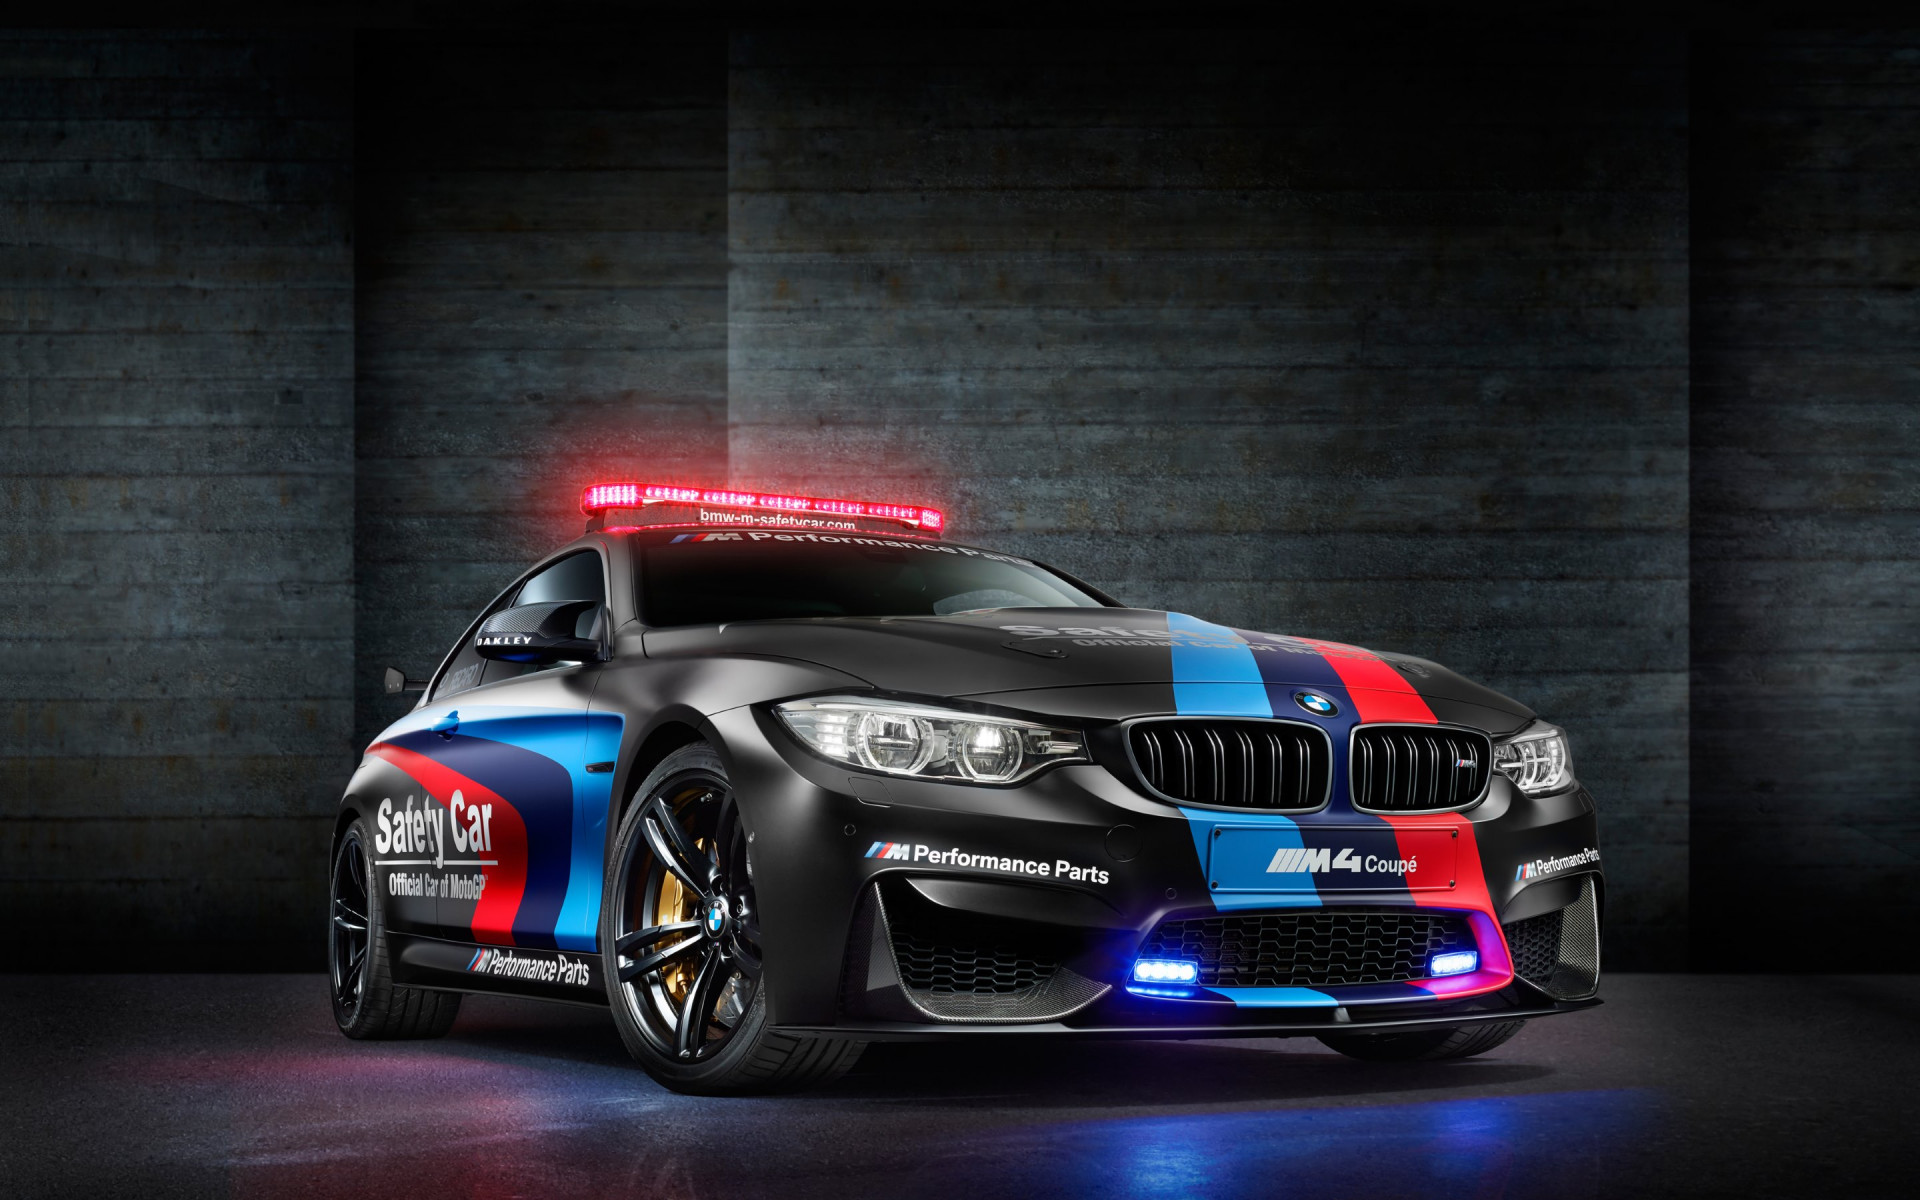 BMW M4 safety car in MotoGP wallpaper 1920x1200